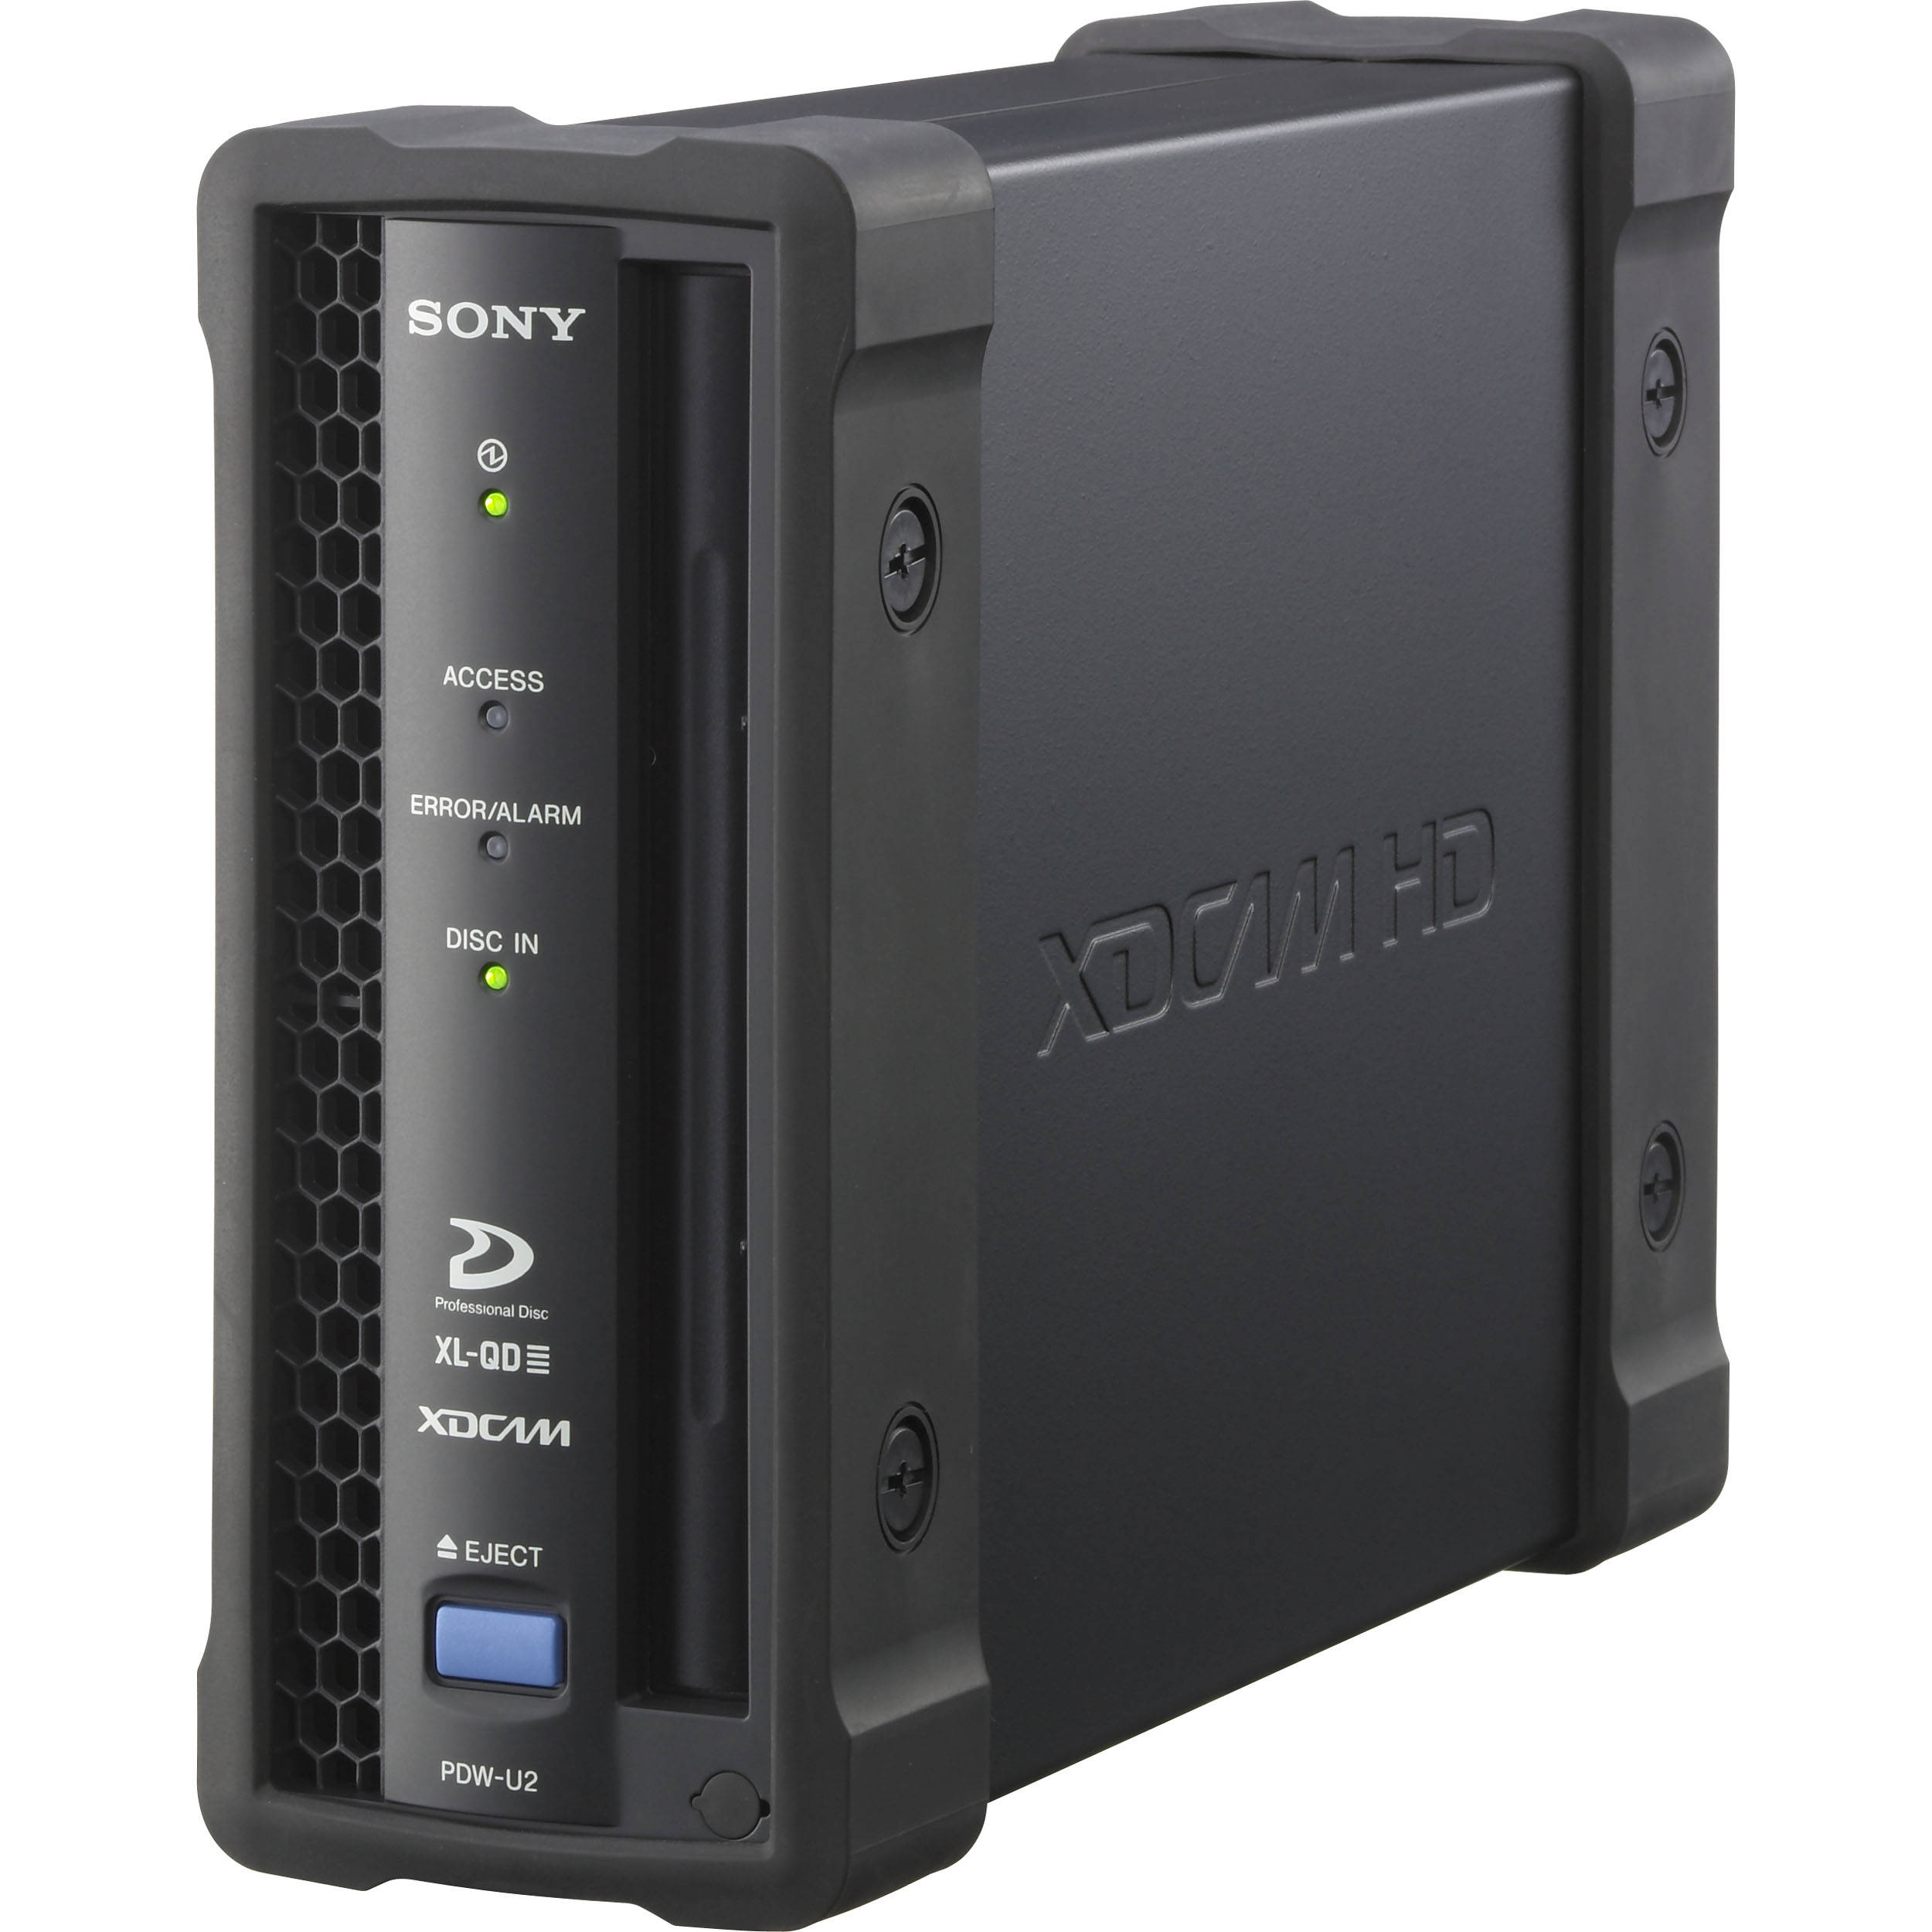 Sony creative software xdcam drive software.